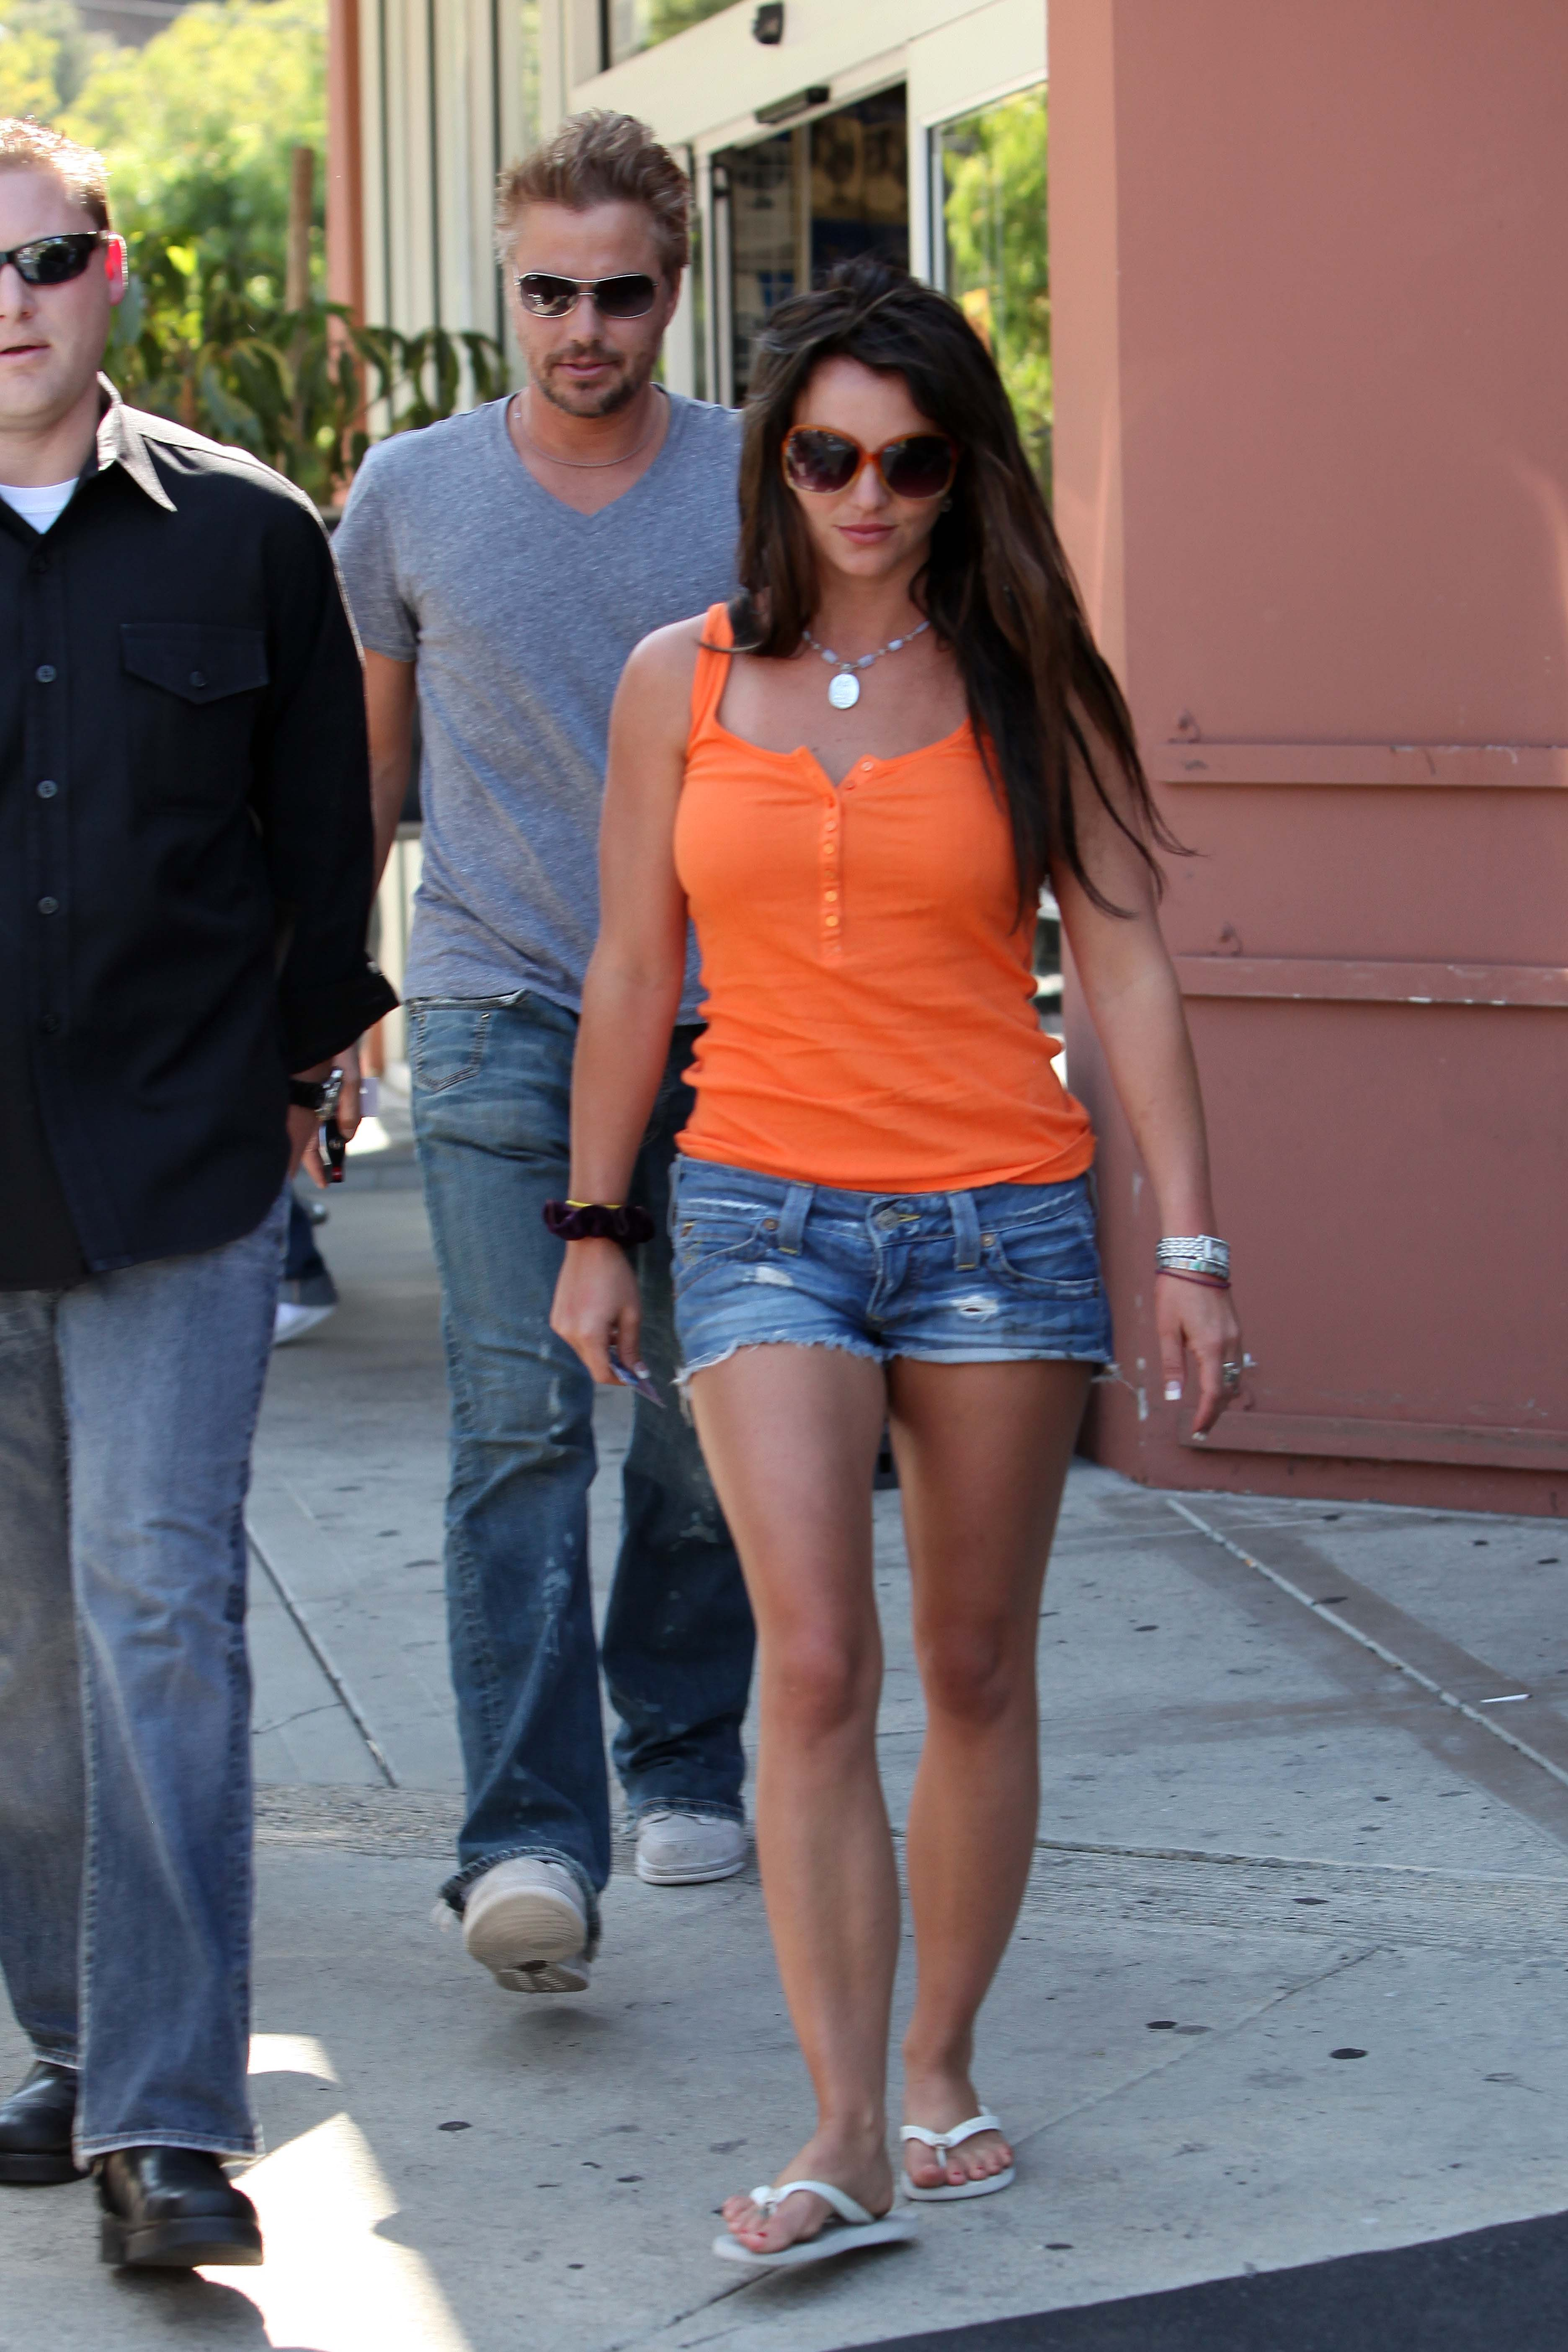 55804_celeb-city.org-The_Elder-Britney_Spears_2009-06-28_-_went_to_the_Bed_Bath_and_Beyond_5254_122_193lo.jpg